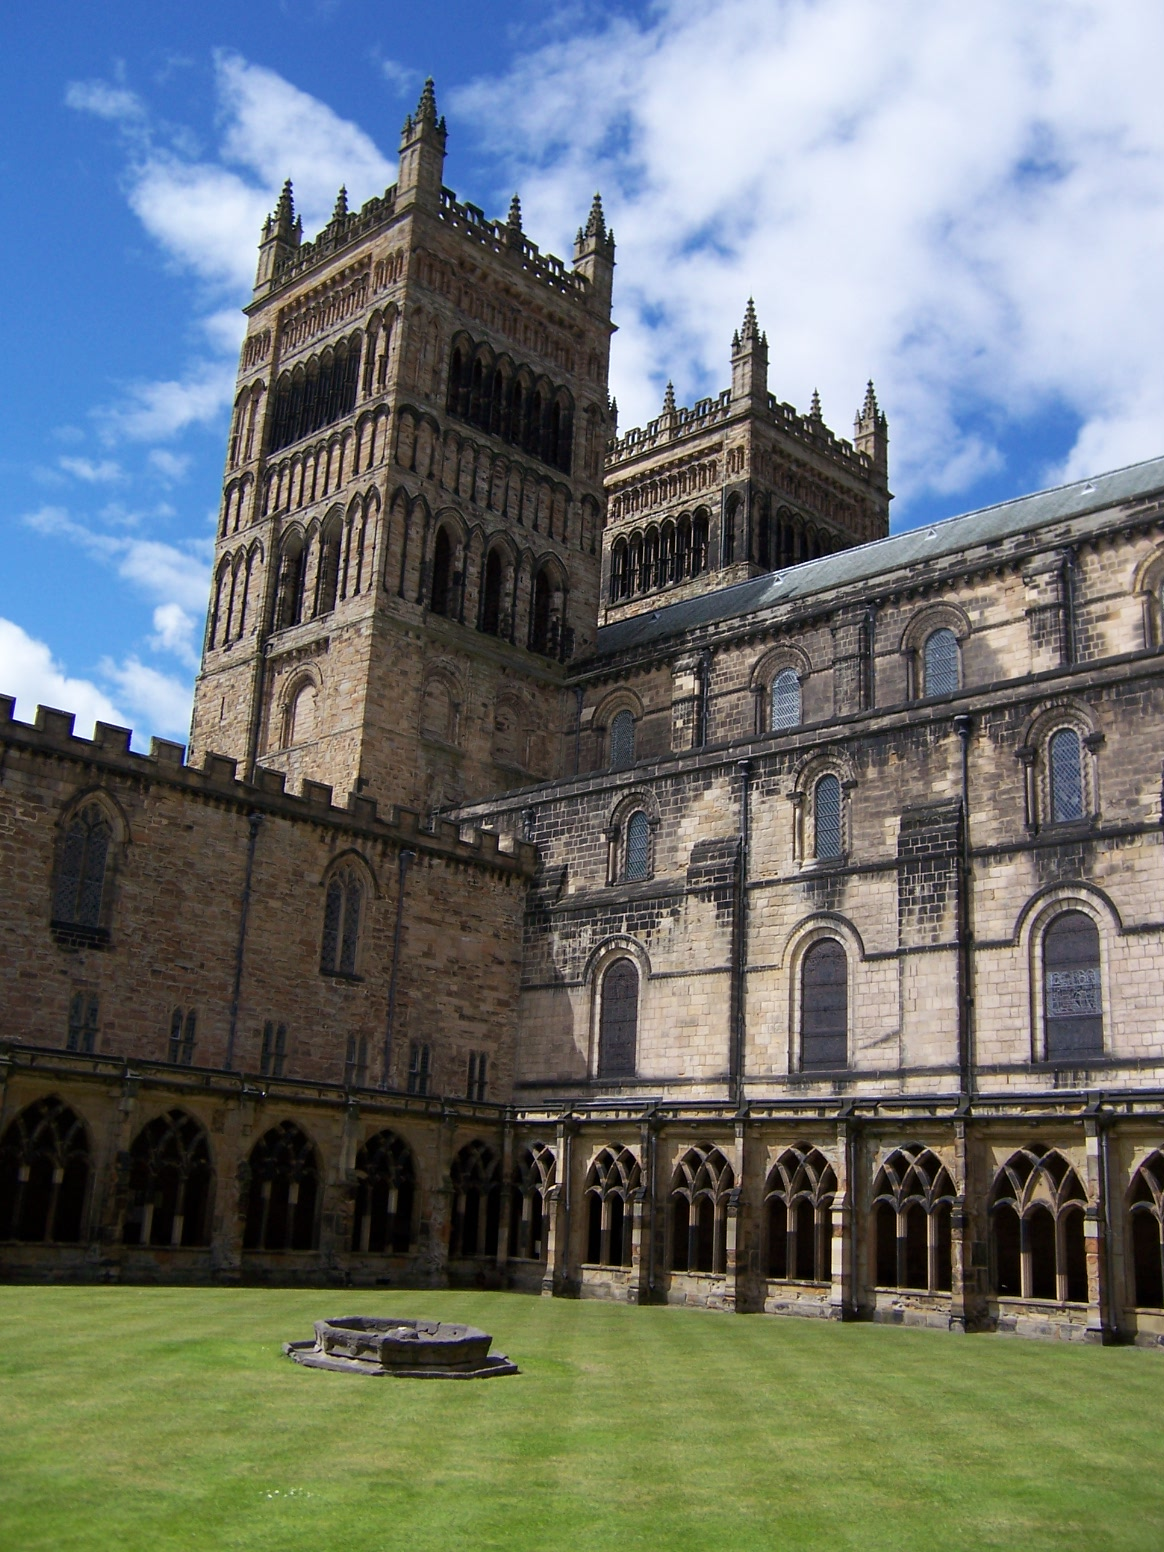 an analysis of the many churches and cathedrals in durham county of england Find free flying buttress essays, term papers there are many churches, cathedrals durham cathedral is located in durham county, england.